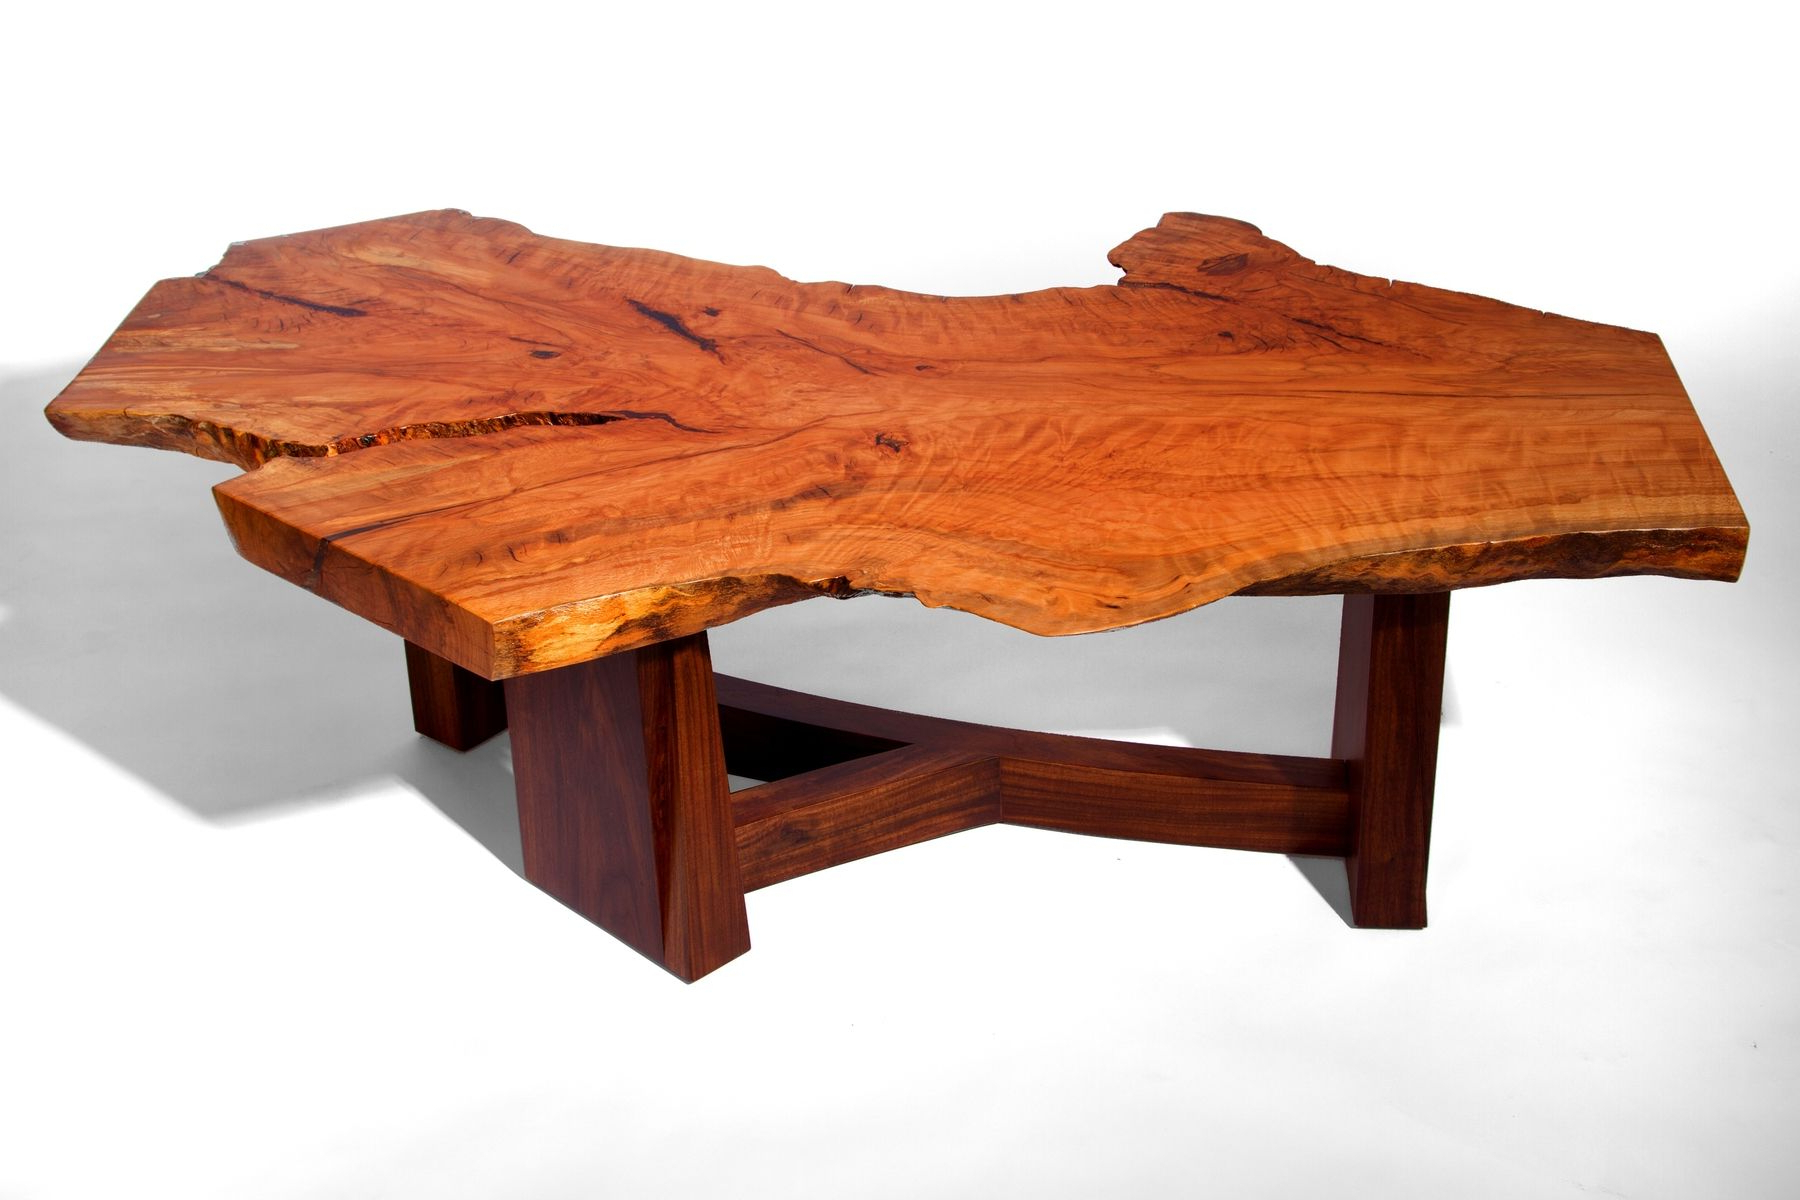 Latest 14 Live Edge Coffee Table For Sale Collections (View 8 of 20)